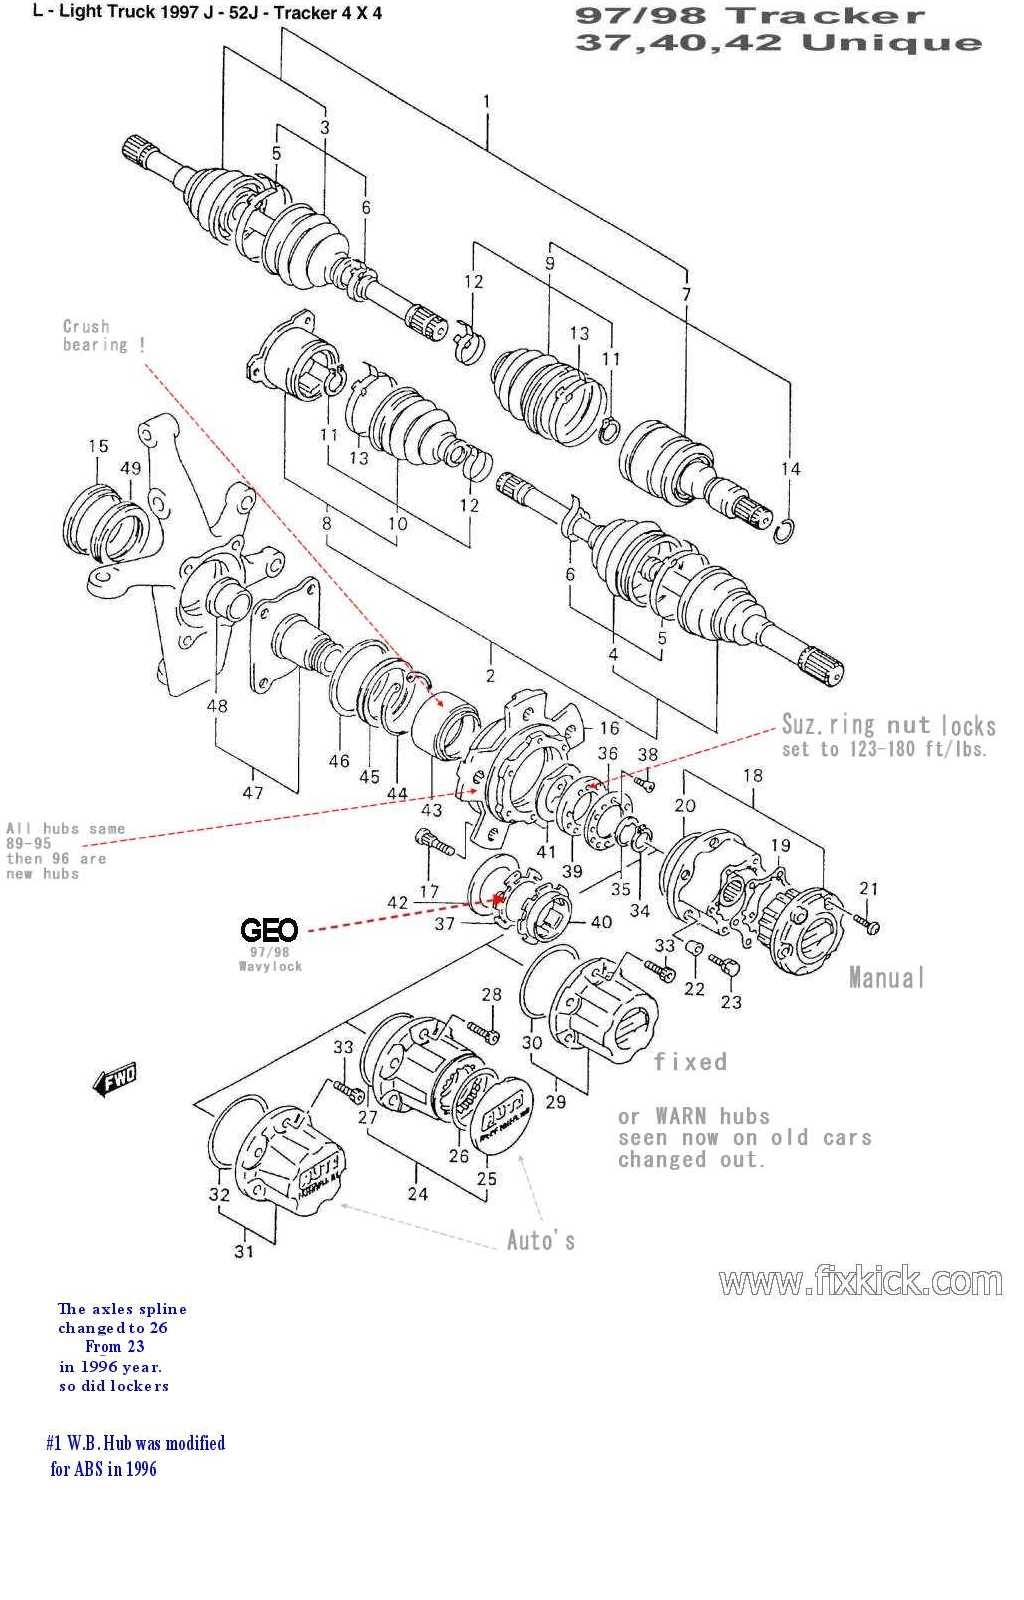 Rotor Diagram in addition 2006 Suzuki Forenza Engine Diagram in addition Gm Parts Diagrams And Part Numbers moreover 1991 Geo Metro Wiring Diagram in addition P 0996b43f8037a6cb. on suzuki sidekick hub diagram